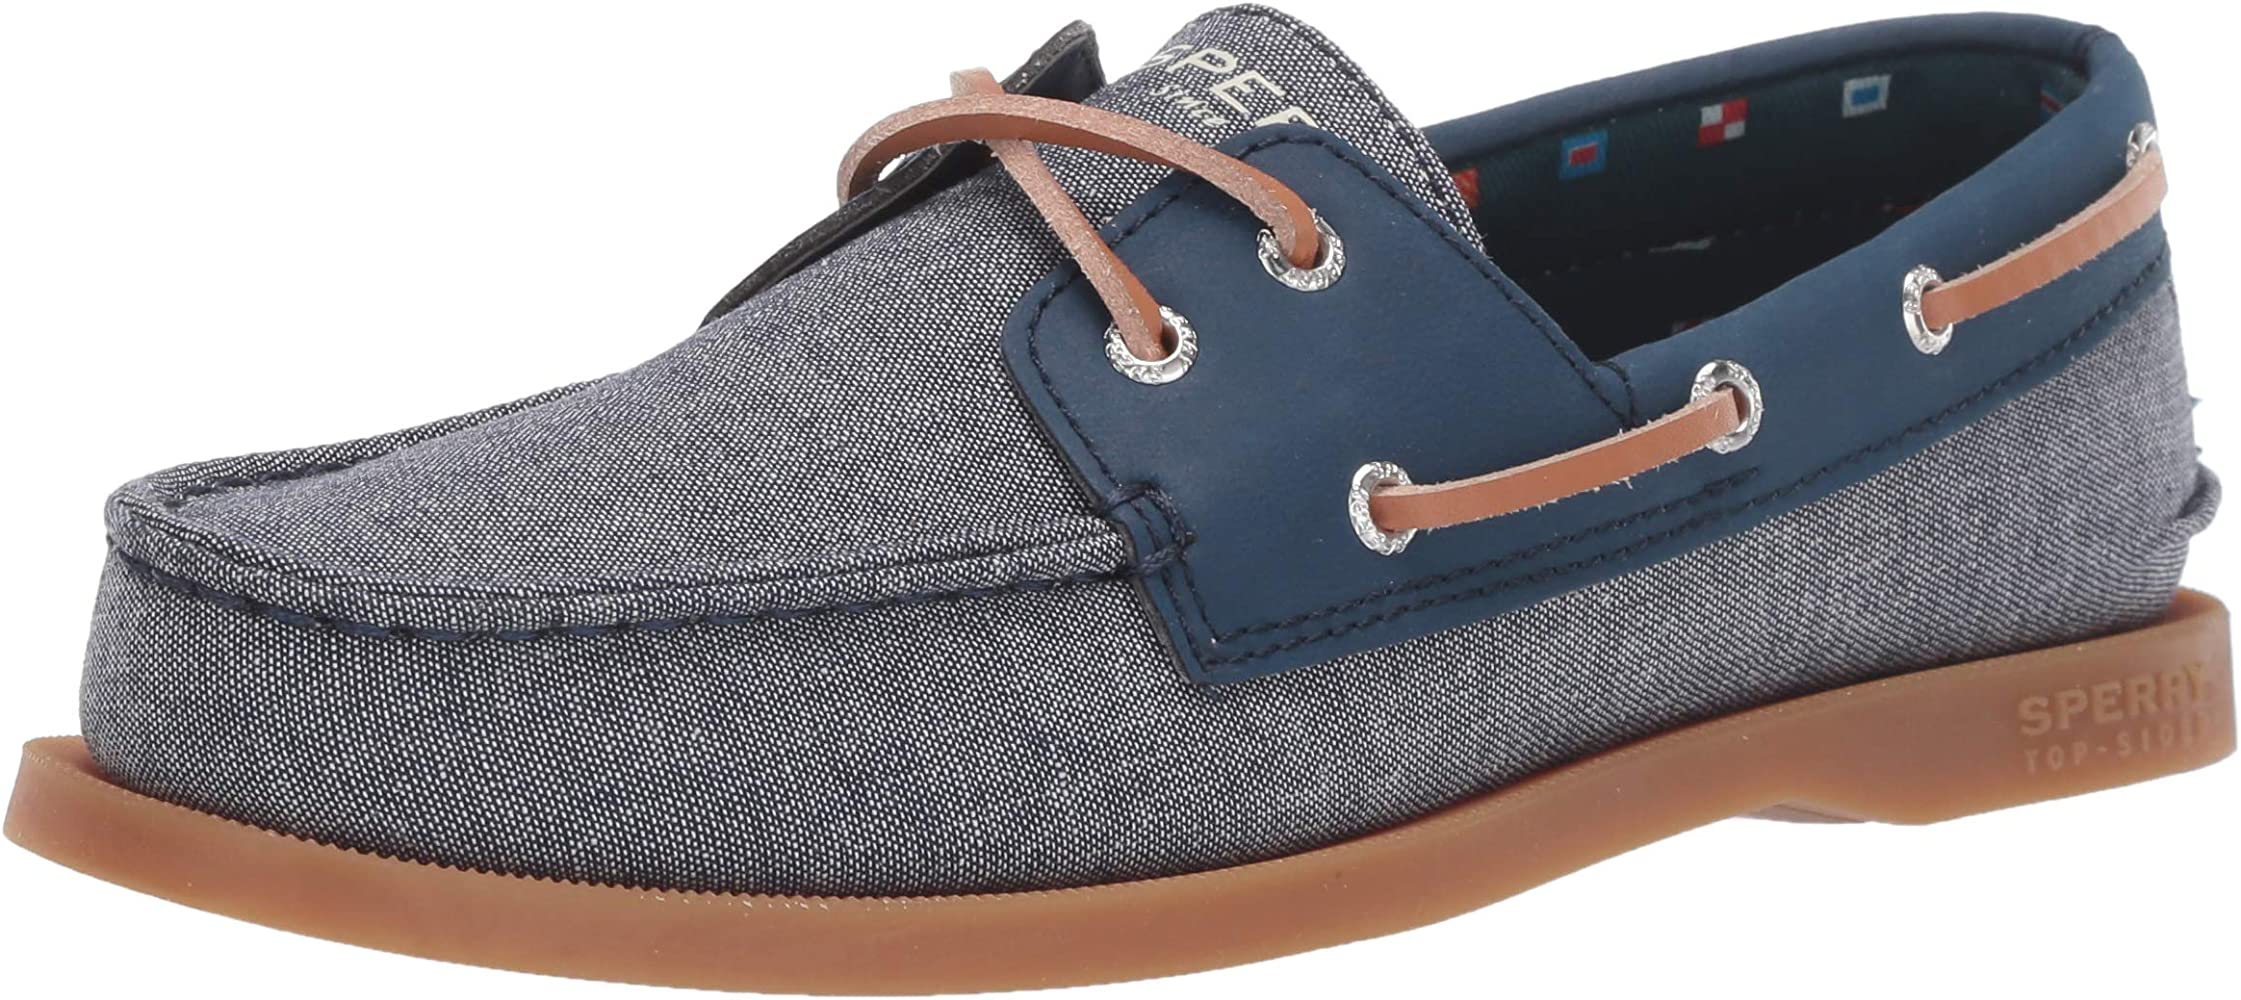 Sperry Boy's A/O Boat Shoe, Chambray